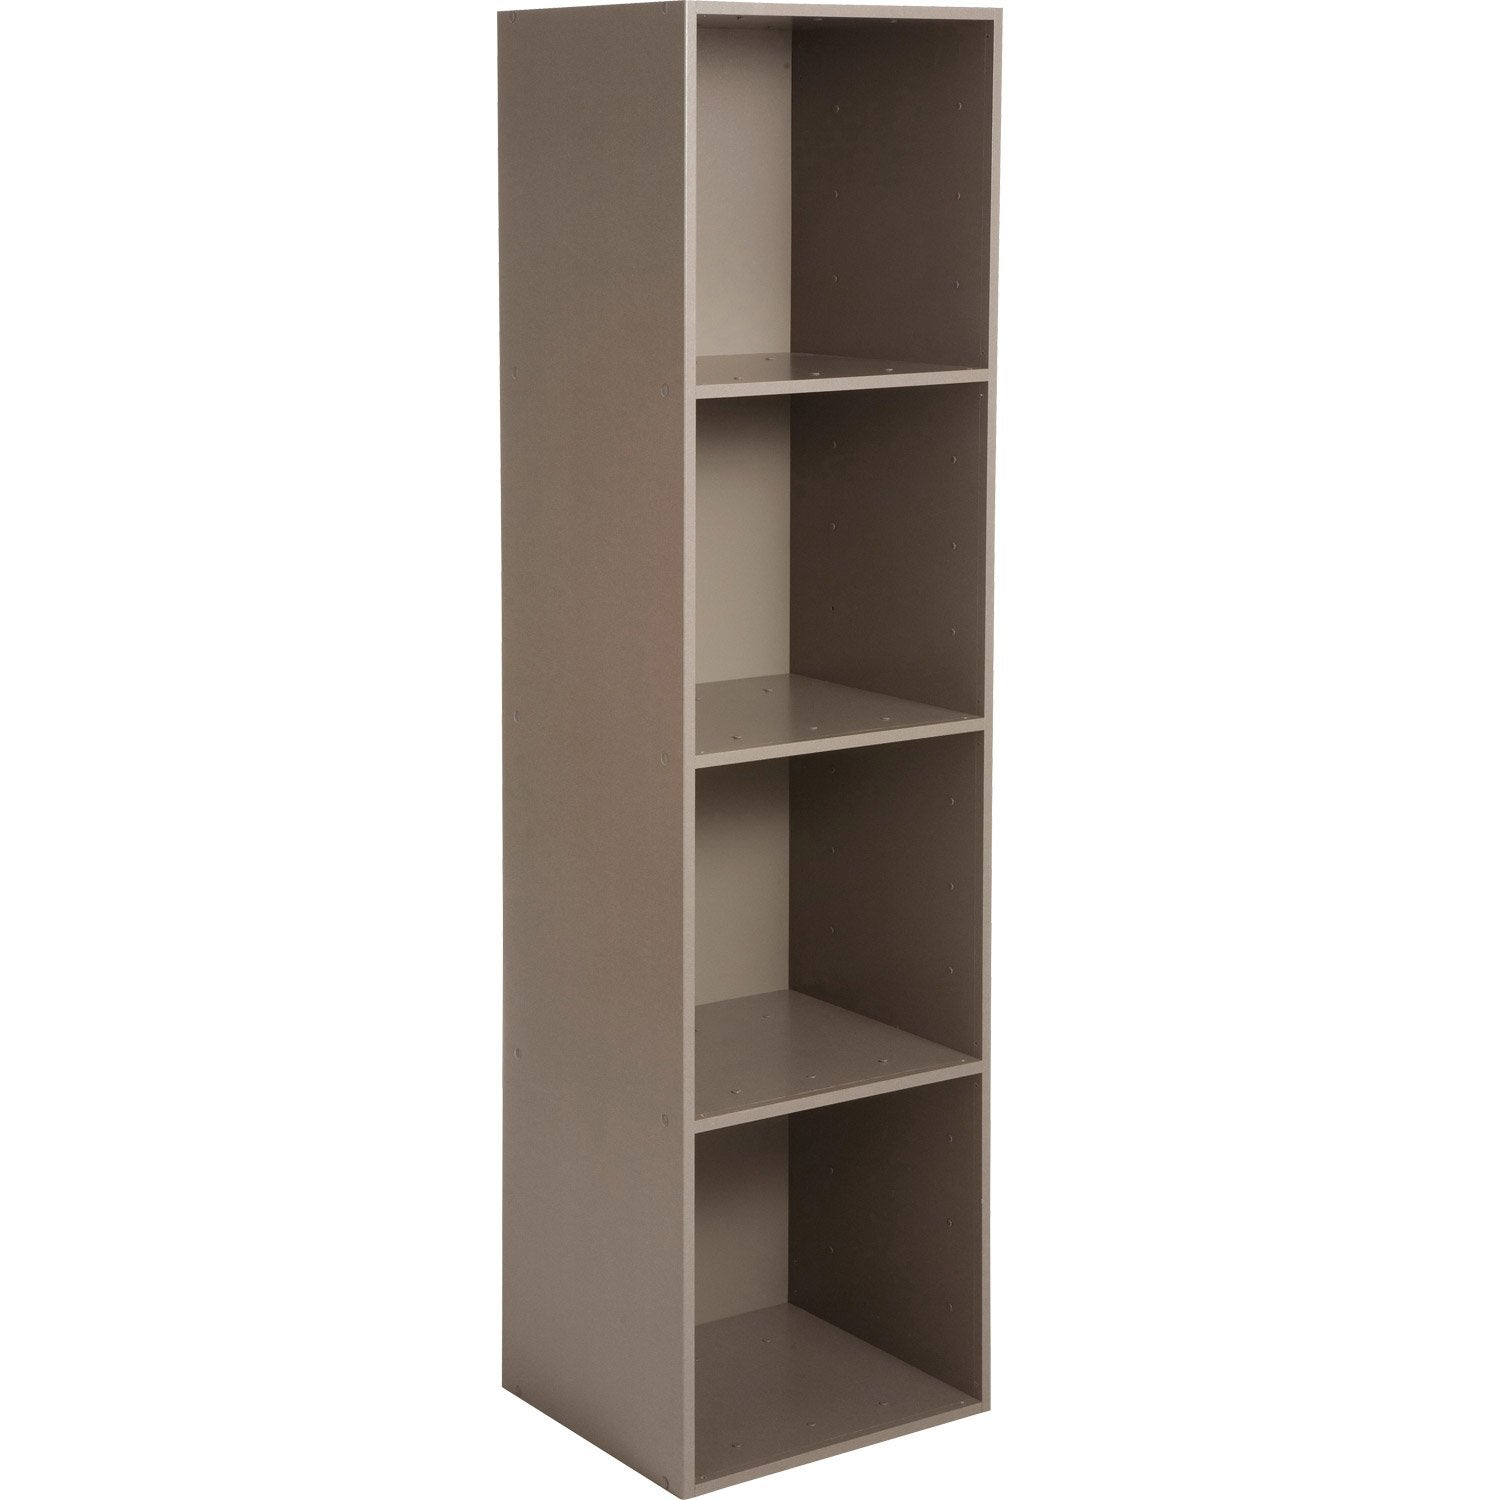 Etag re 4 cases multikaz taupe x x cm leroy merlin - Colonne rangement leroy merlin ...